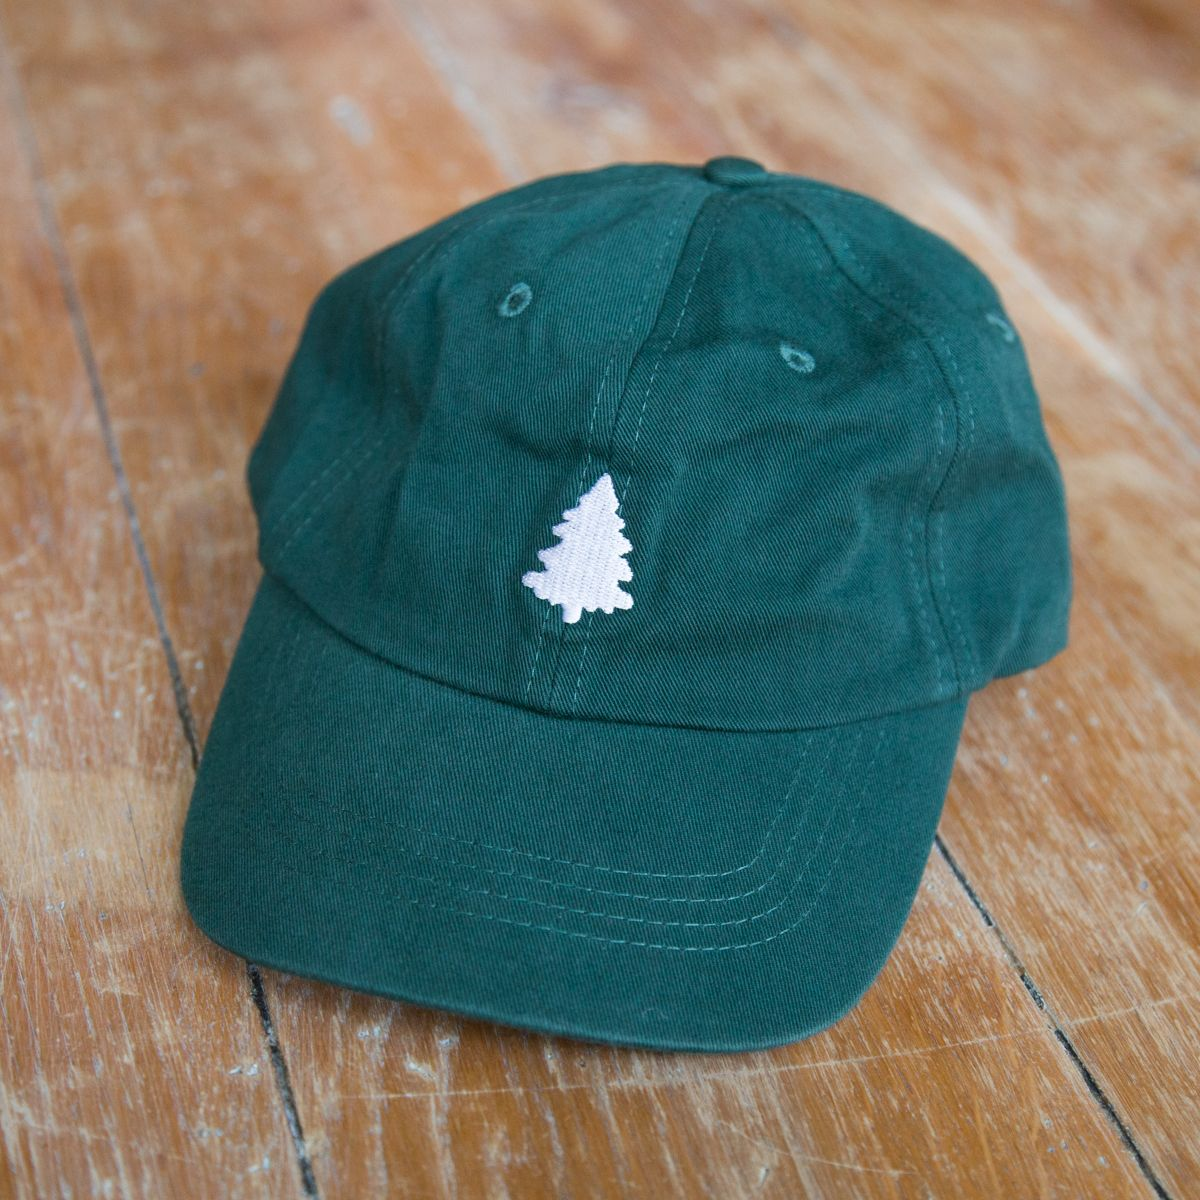 c0a8636648291d Happy Earth | Clothes for Conservation - For-everGreen Cap. Get this hat  for 15% off when you use code ALISSA:)